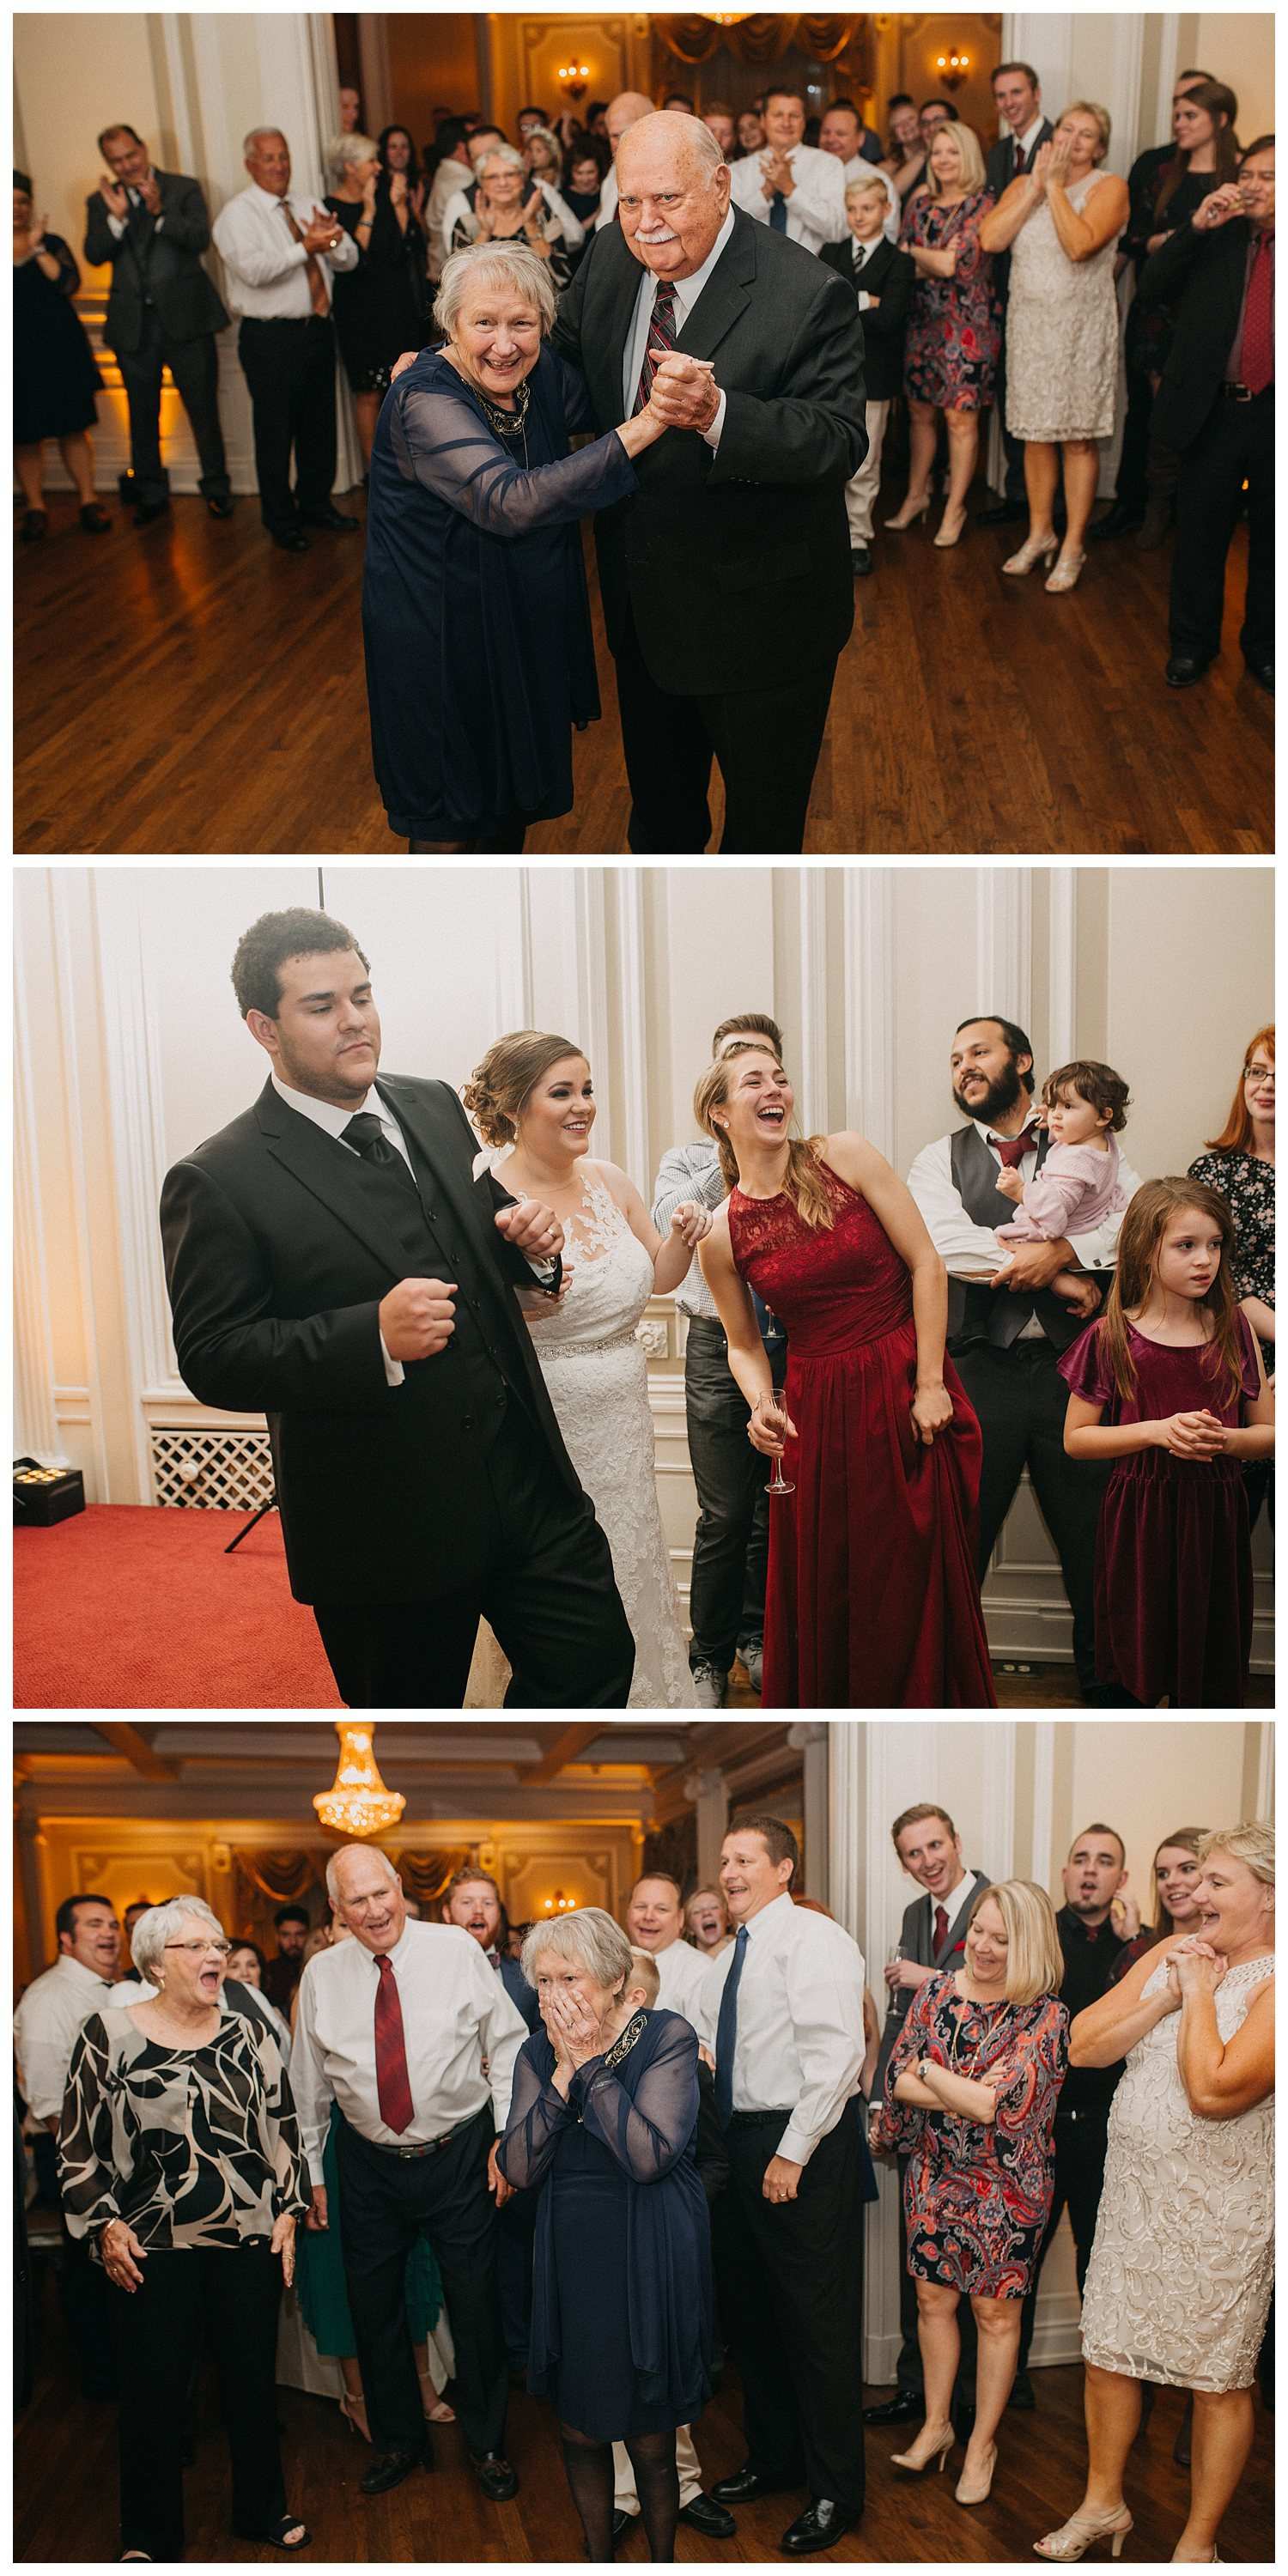 Kelsey_Diane_Photography_Loose_Mansion_Wedding_Photography_Kansas_City_Victor_Lyndsay_0172.jpg